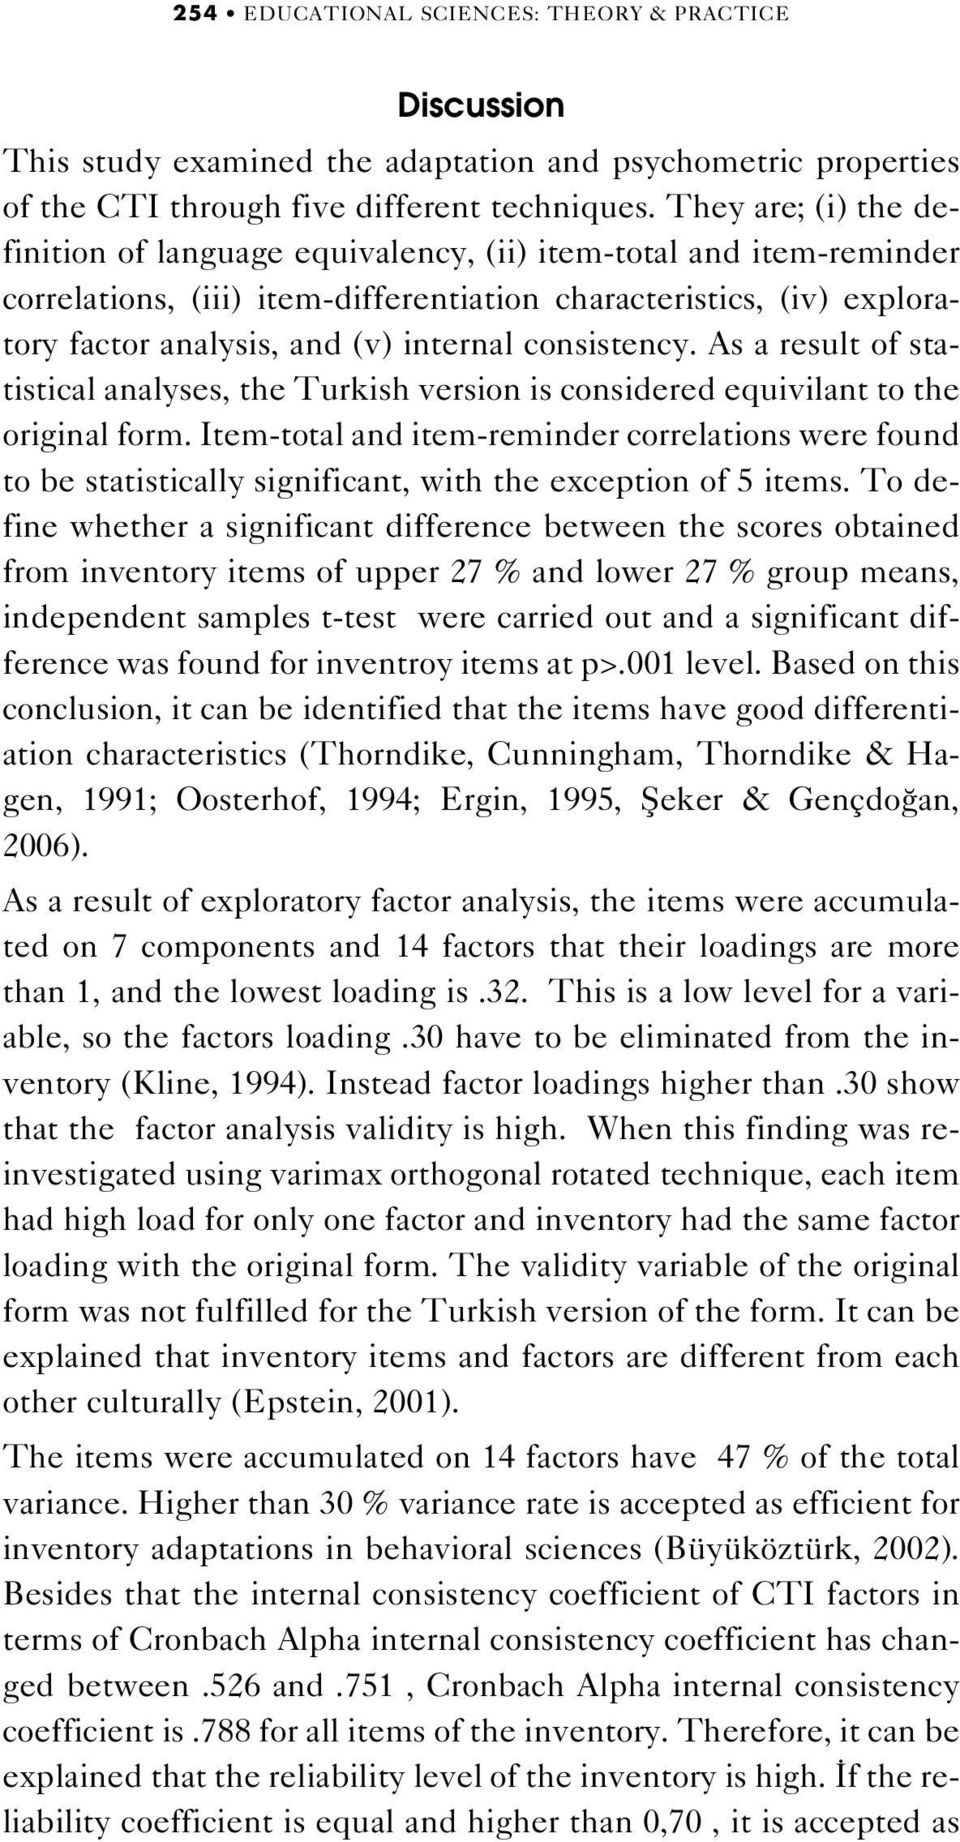 consistency. As a result of statistical analyses, the Turkish version is considered equivilant to the original form.